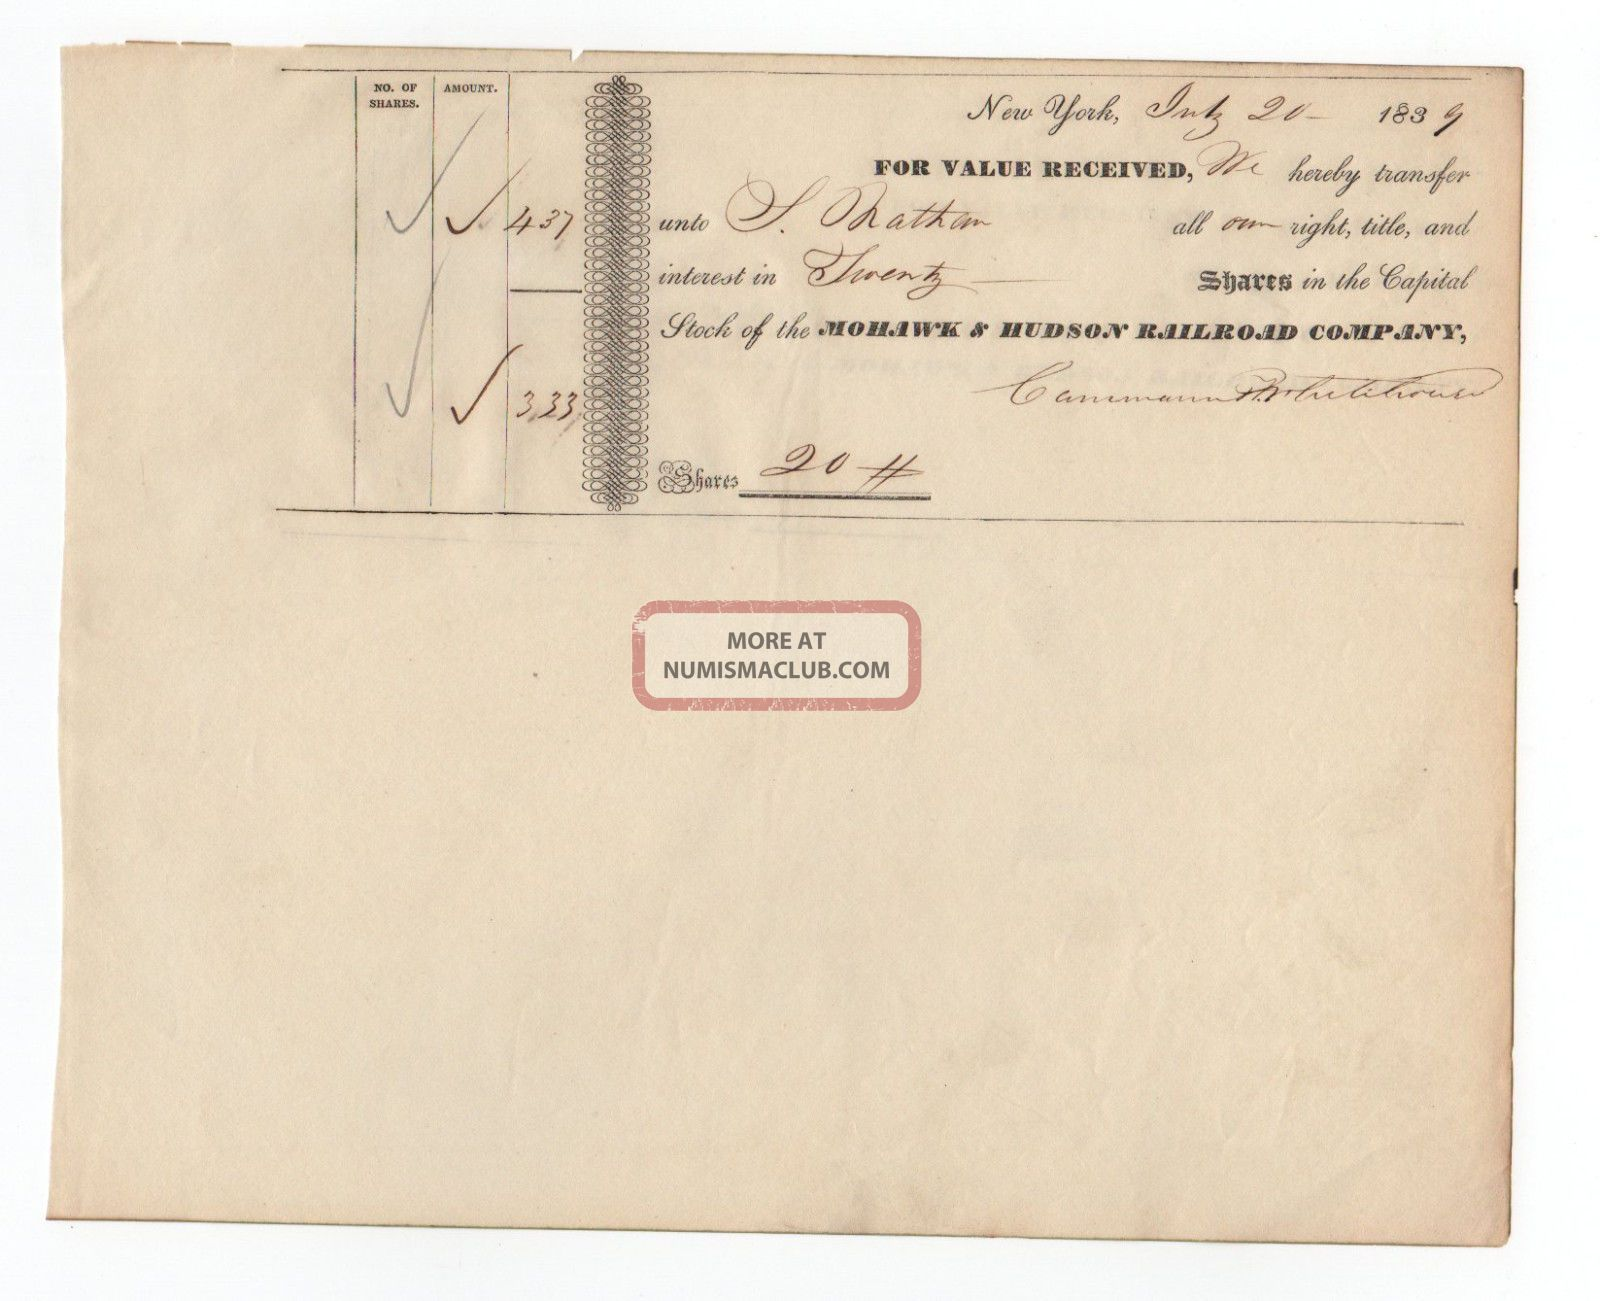 1839 Mohawk And Hudson Railroad Company Stock Transfer Transportation photo